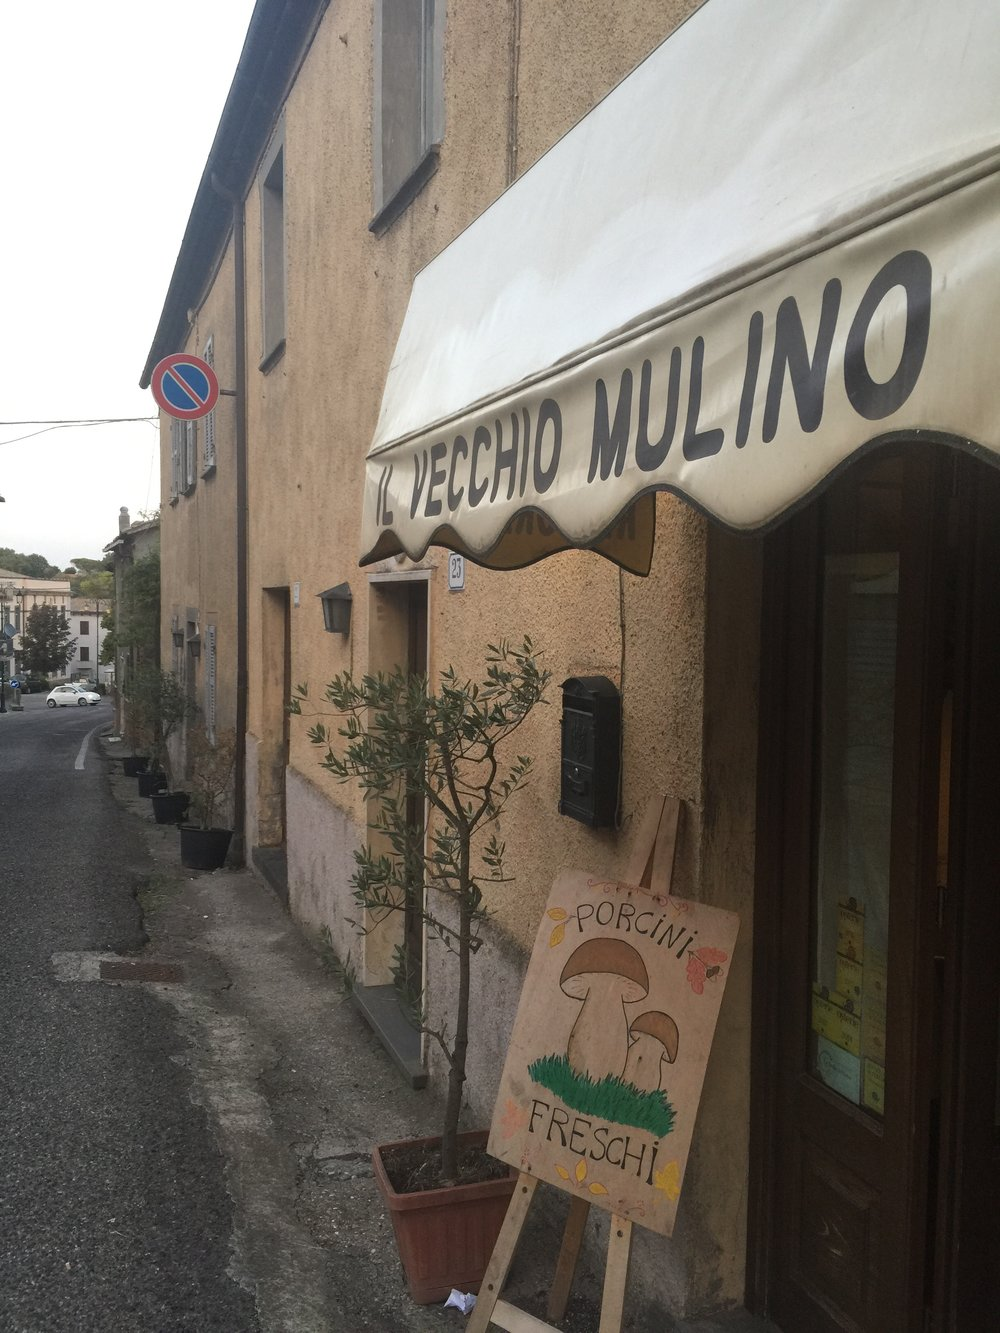 The quaint restaurant Il Vecchio Mulino along Lubriano's main street serving fresh mushroom dishes also pairs them with some of the best vintages of Antinori wines. Great in value as well! (Photo credit: Sumi_Sumilier). D'amico's guest house adjacent to the restaurant charmingly tucked away.  (Photo credit: Sumi_Sumilier)